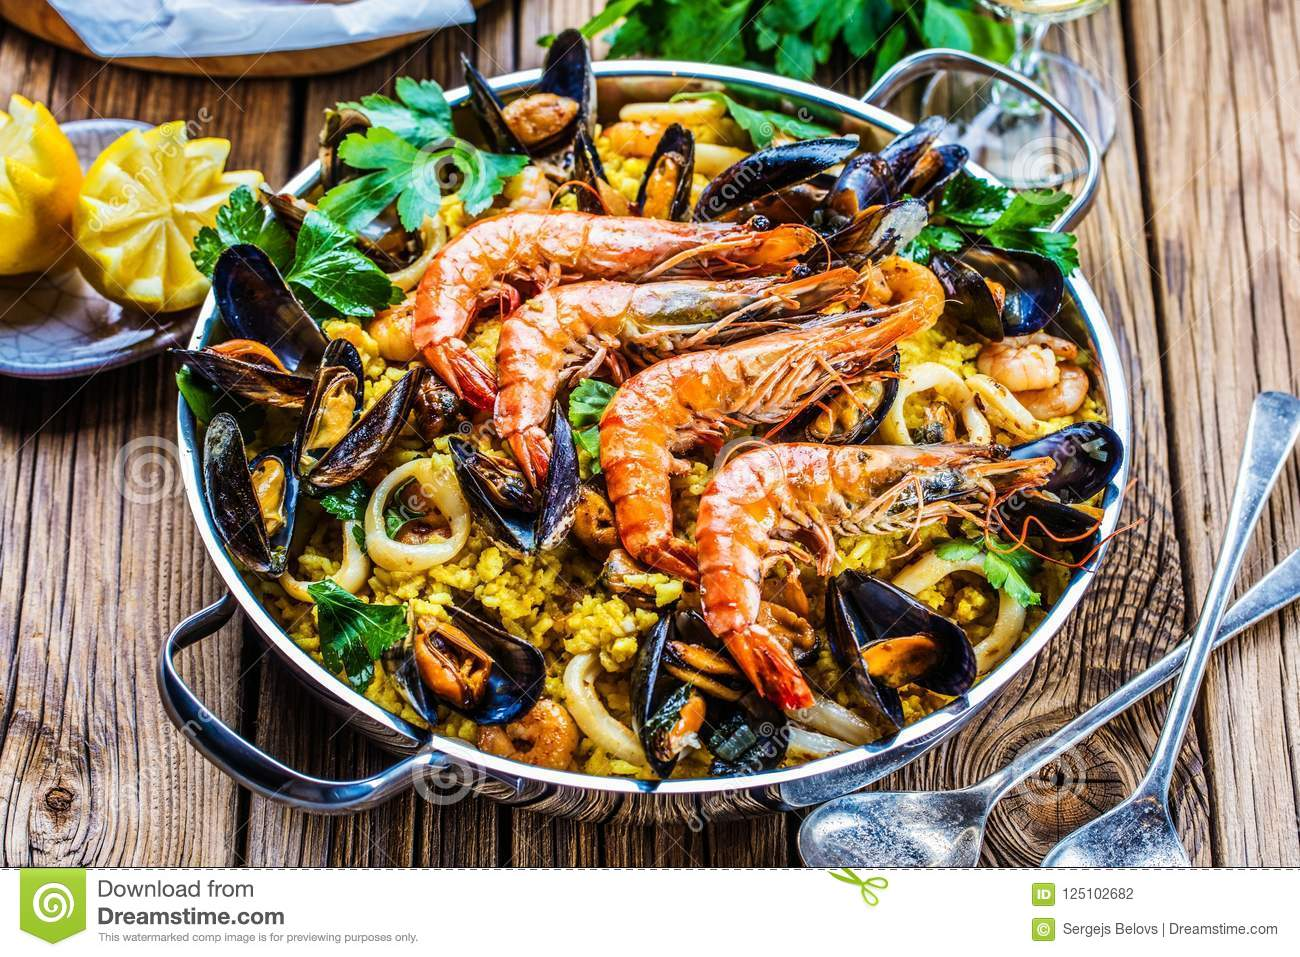 Seafood Paella in the man on a white table with decoration